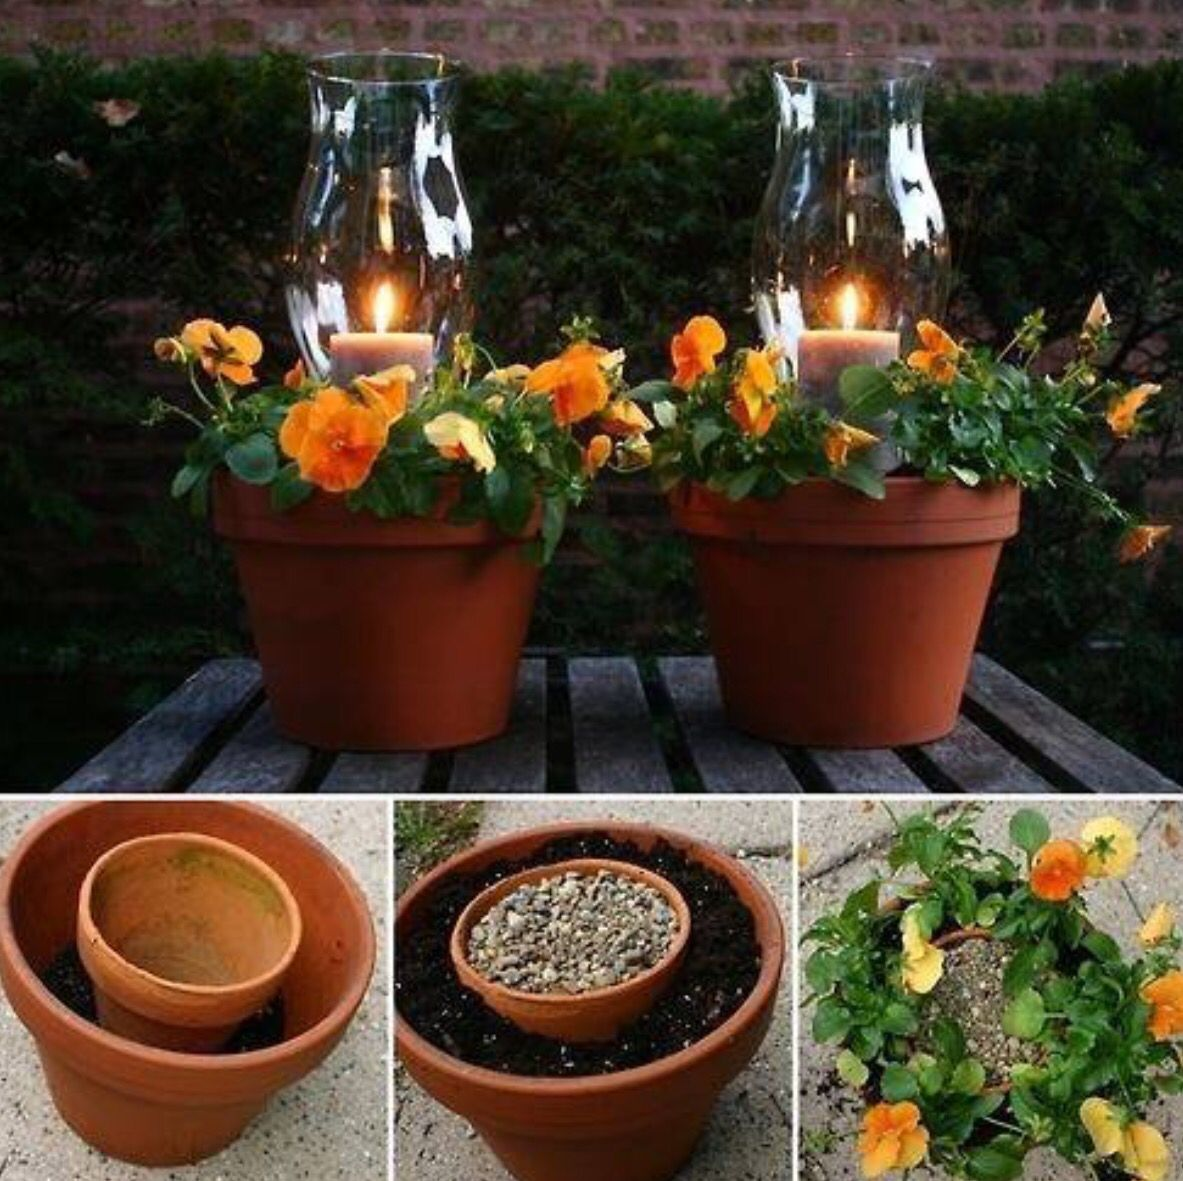 Diy Flower Gardening Ideas And Planter Projects: Pin By Lauren Carter On A R T